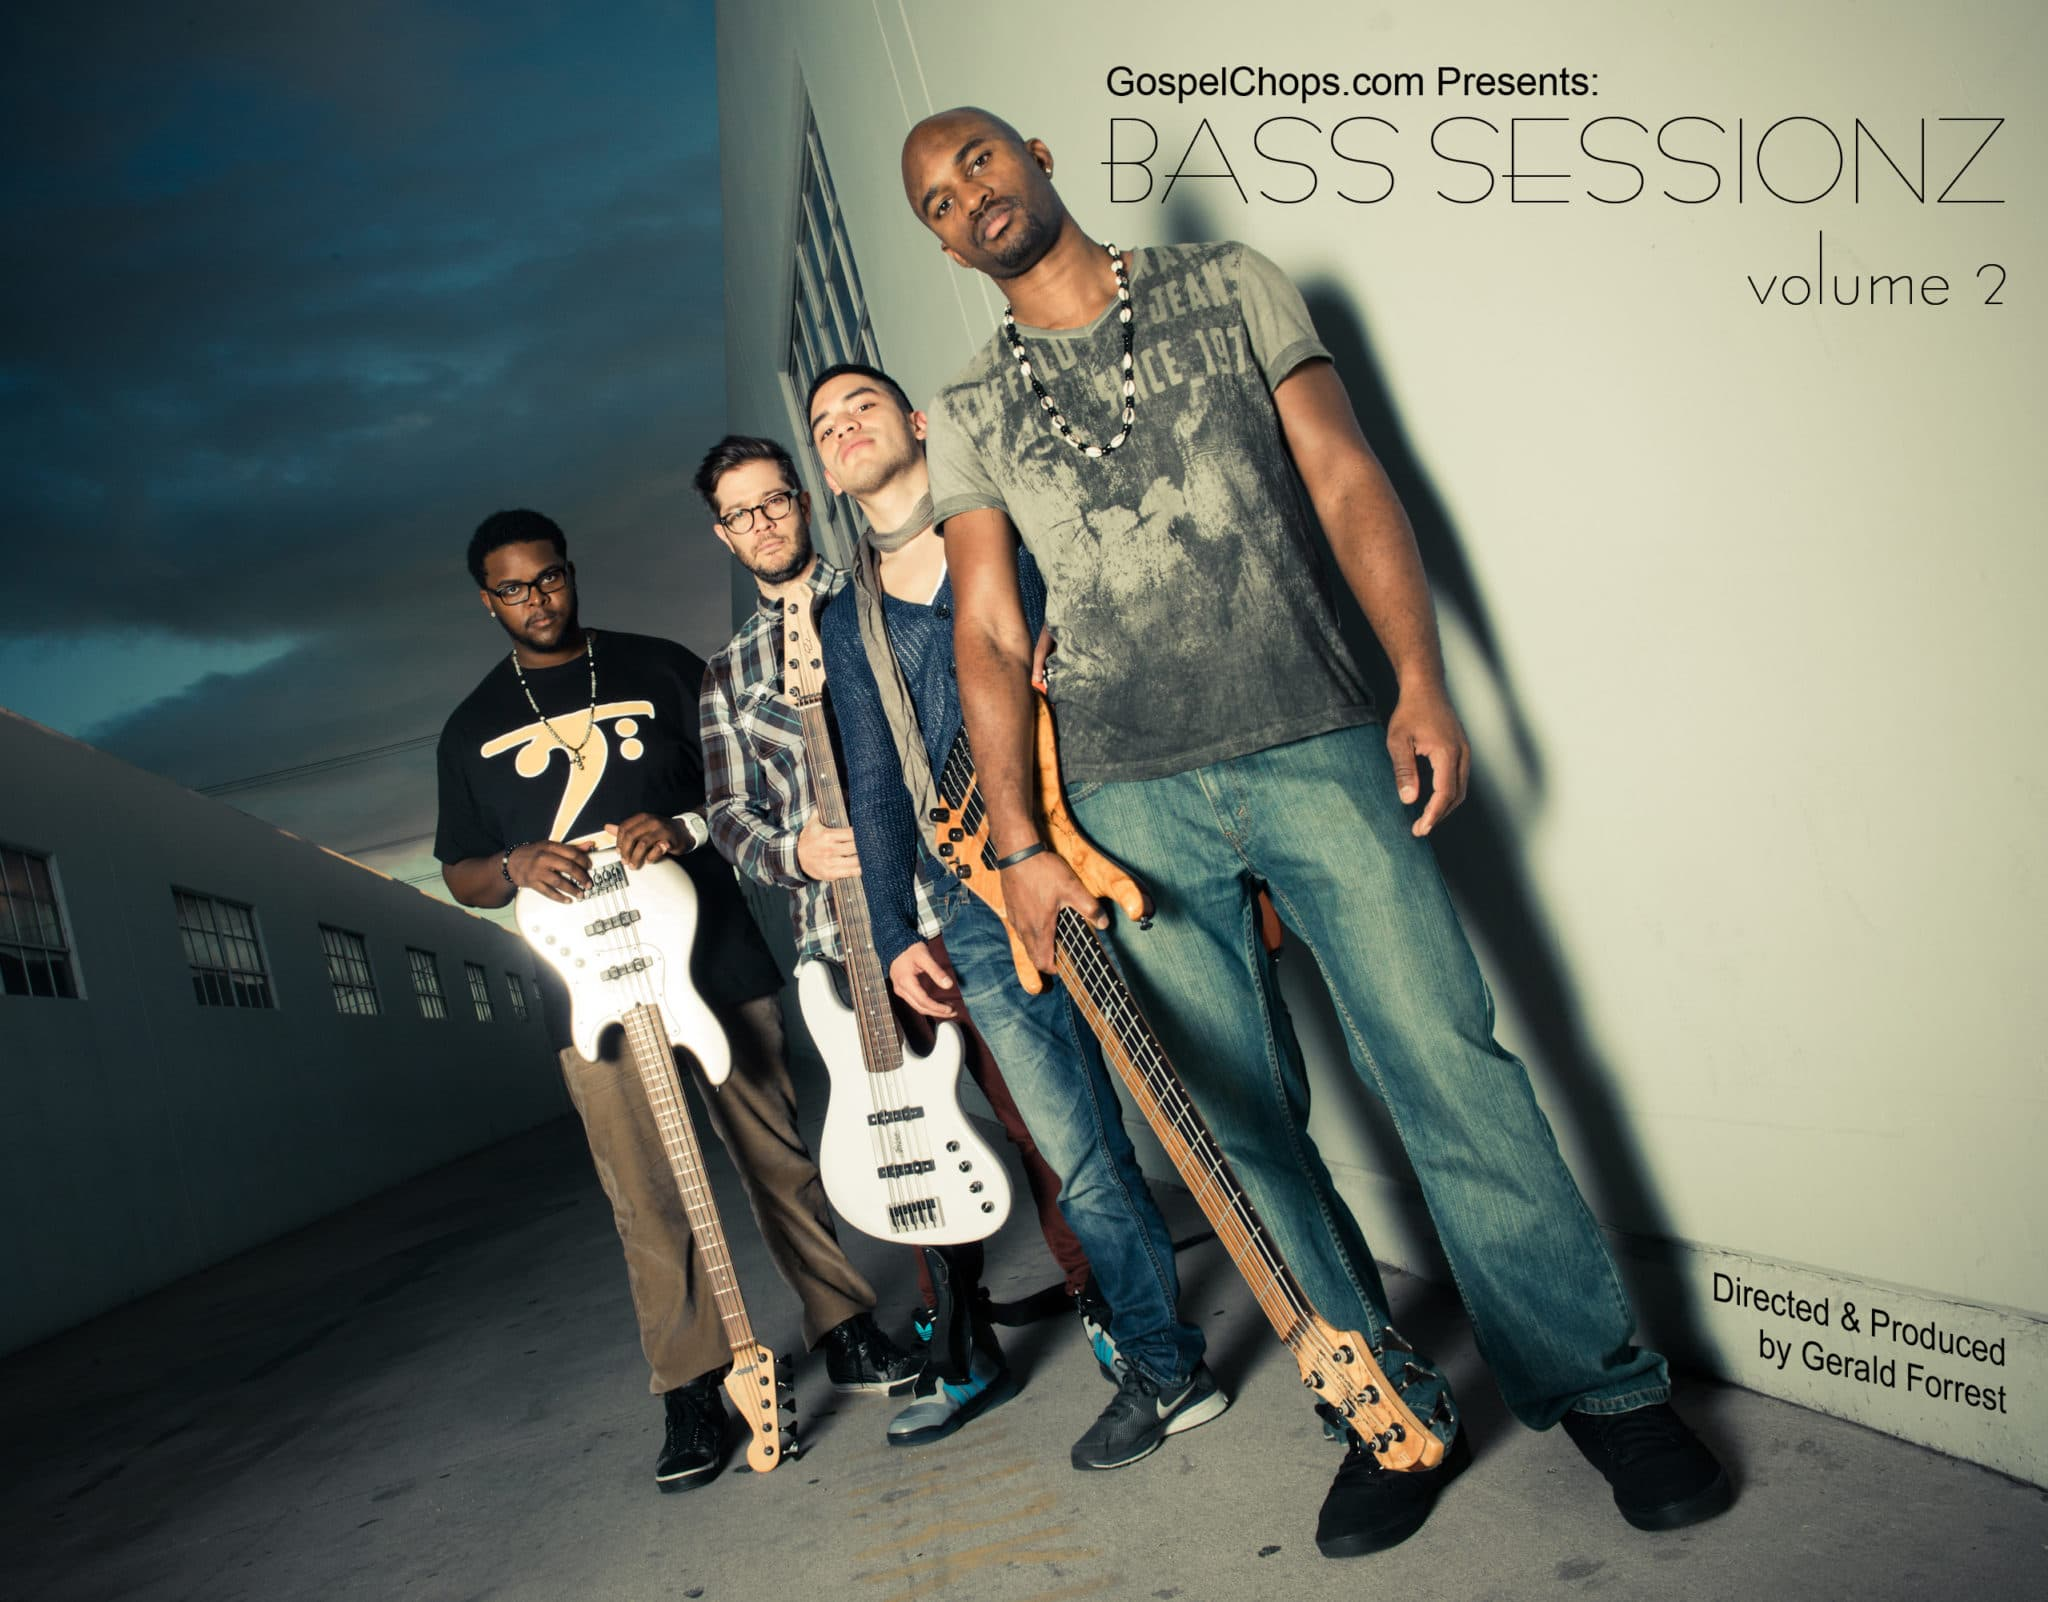 Bass Tribute to Michael Jackson Featured on BASS SESSIONZ VOL. 2